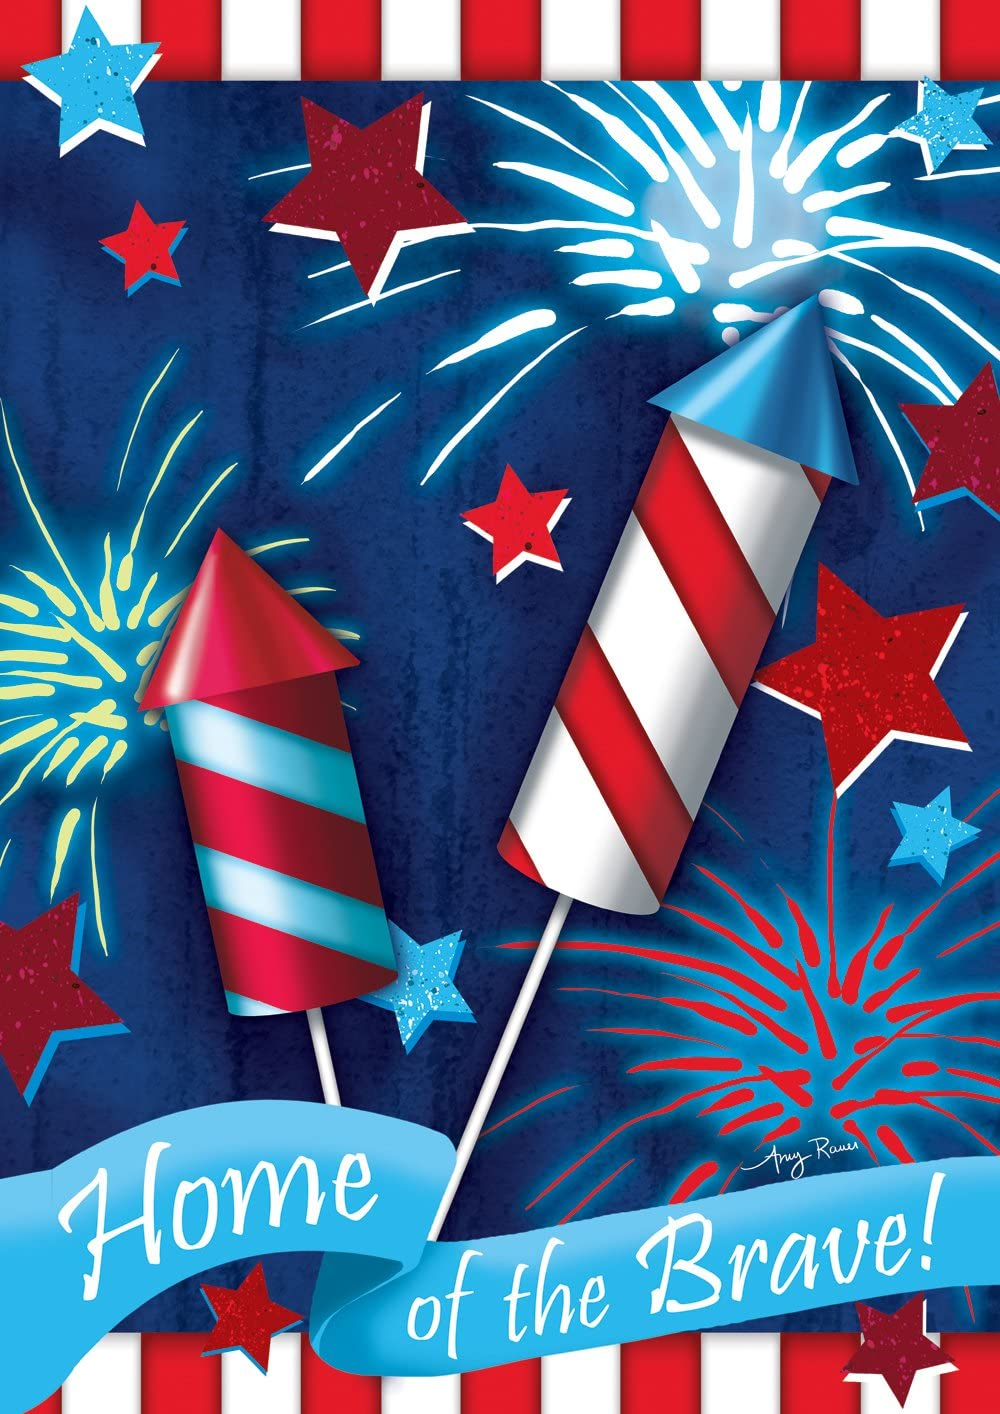 Toland Home Garden Home Of The Brave 12.5 x 18 Inch Decorative Patriotic Summer July 4 Firework USA Garden Flag